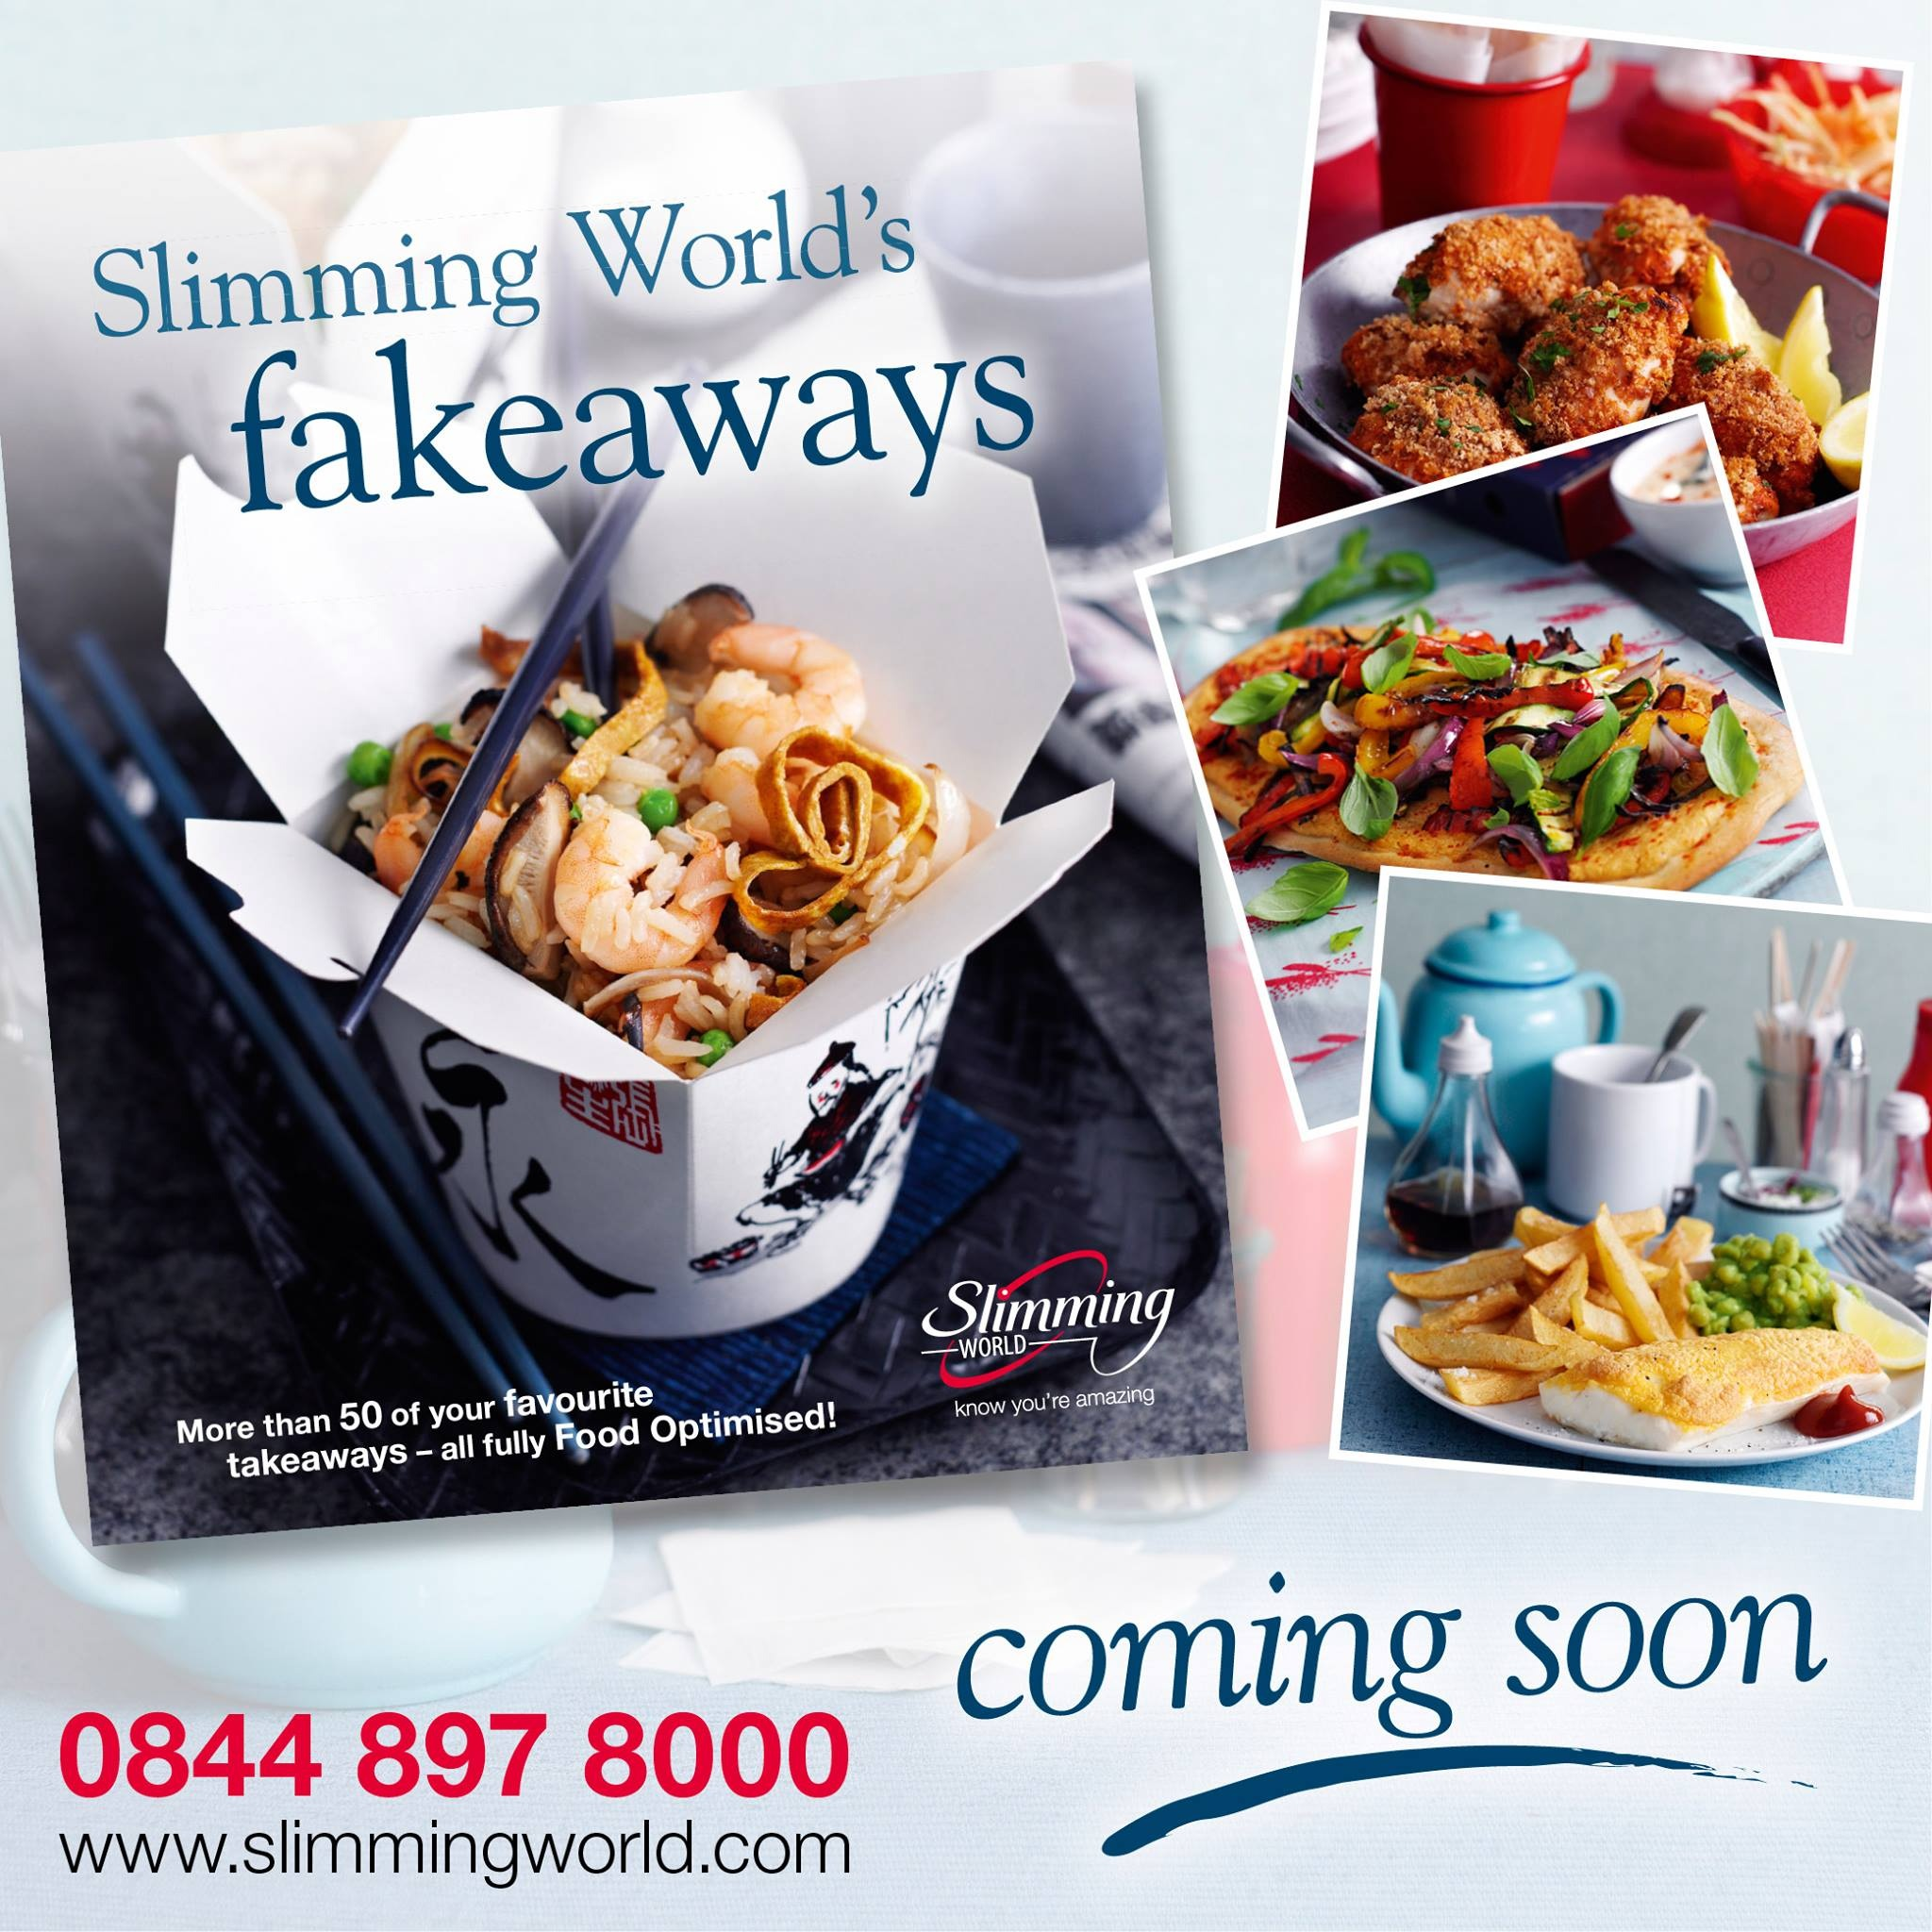 Slimming Worlds Fakeaway Book Is Out Next Week Swstretford